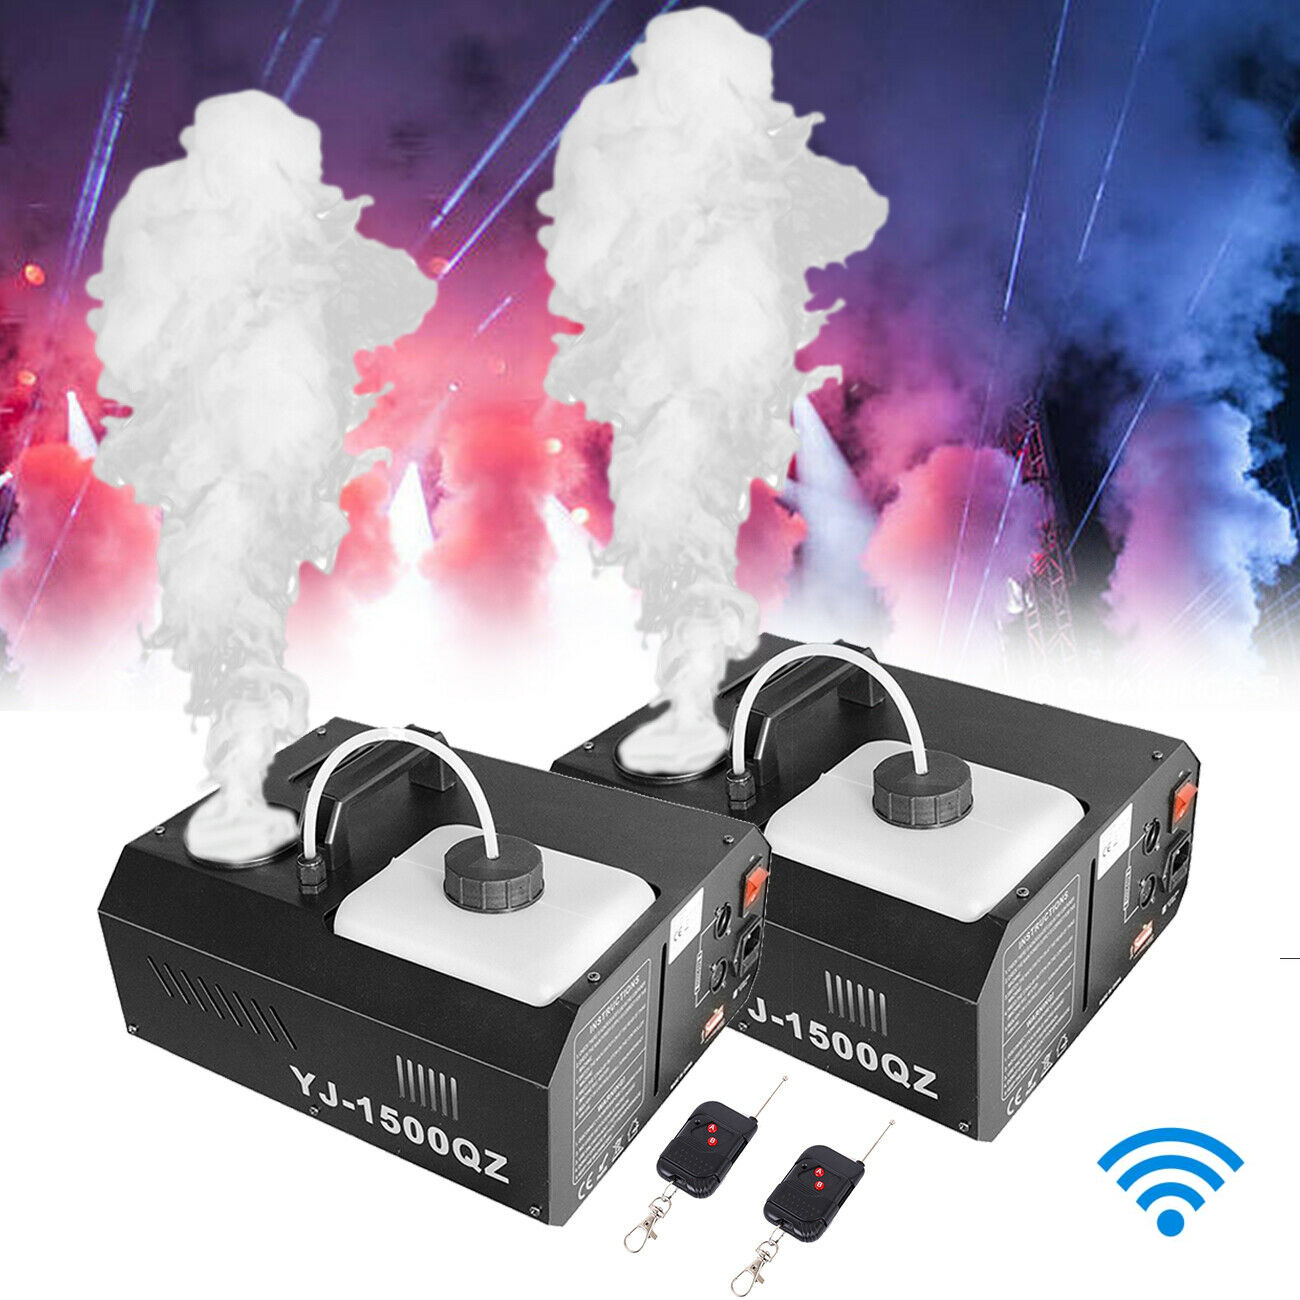 Honhill Fog Smoke Machine DMX512 1500W Wireless Fogger Machine With Remote Control Upspray Fogger Stage Disco Fogger